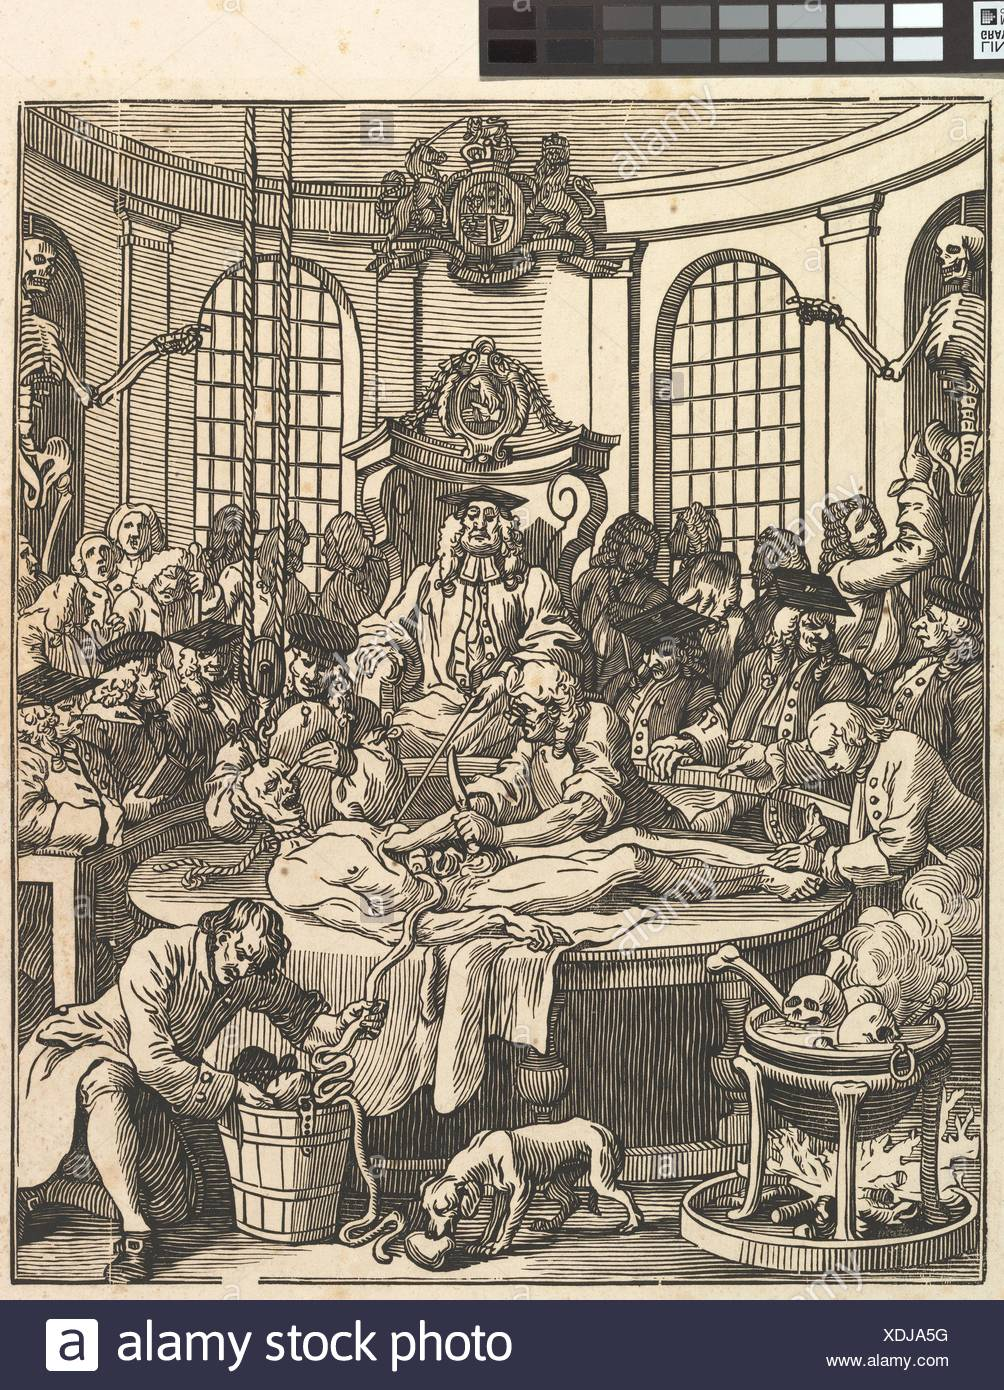 The Reward of Cruelty. Printmaker: J. Bell (British, active 1721-80); Artist: After William Hogarth (British, London 1697-1764 London); Publisher: - Stock Image